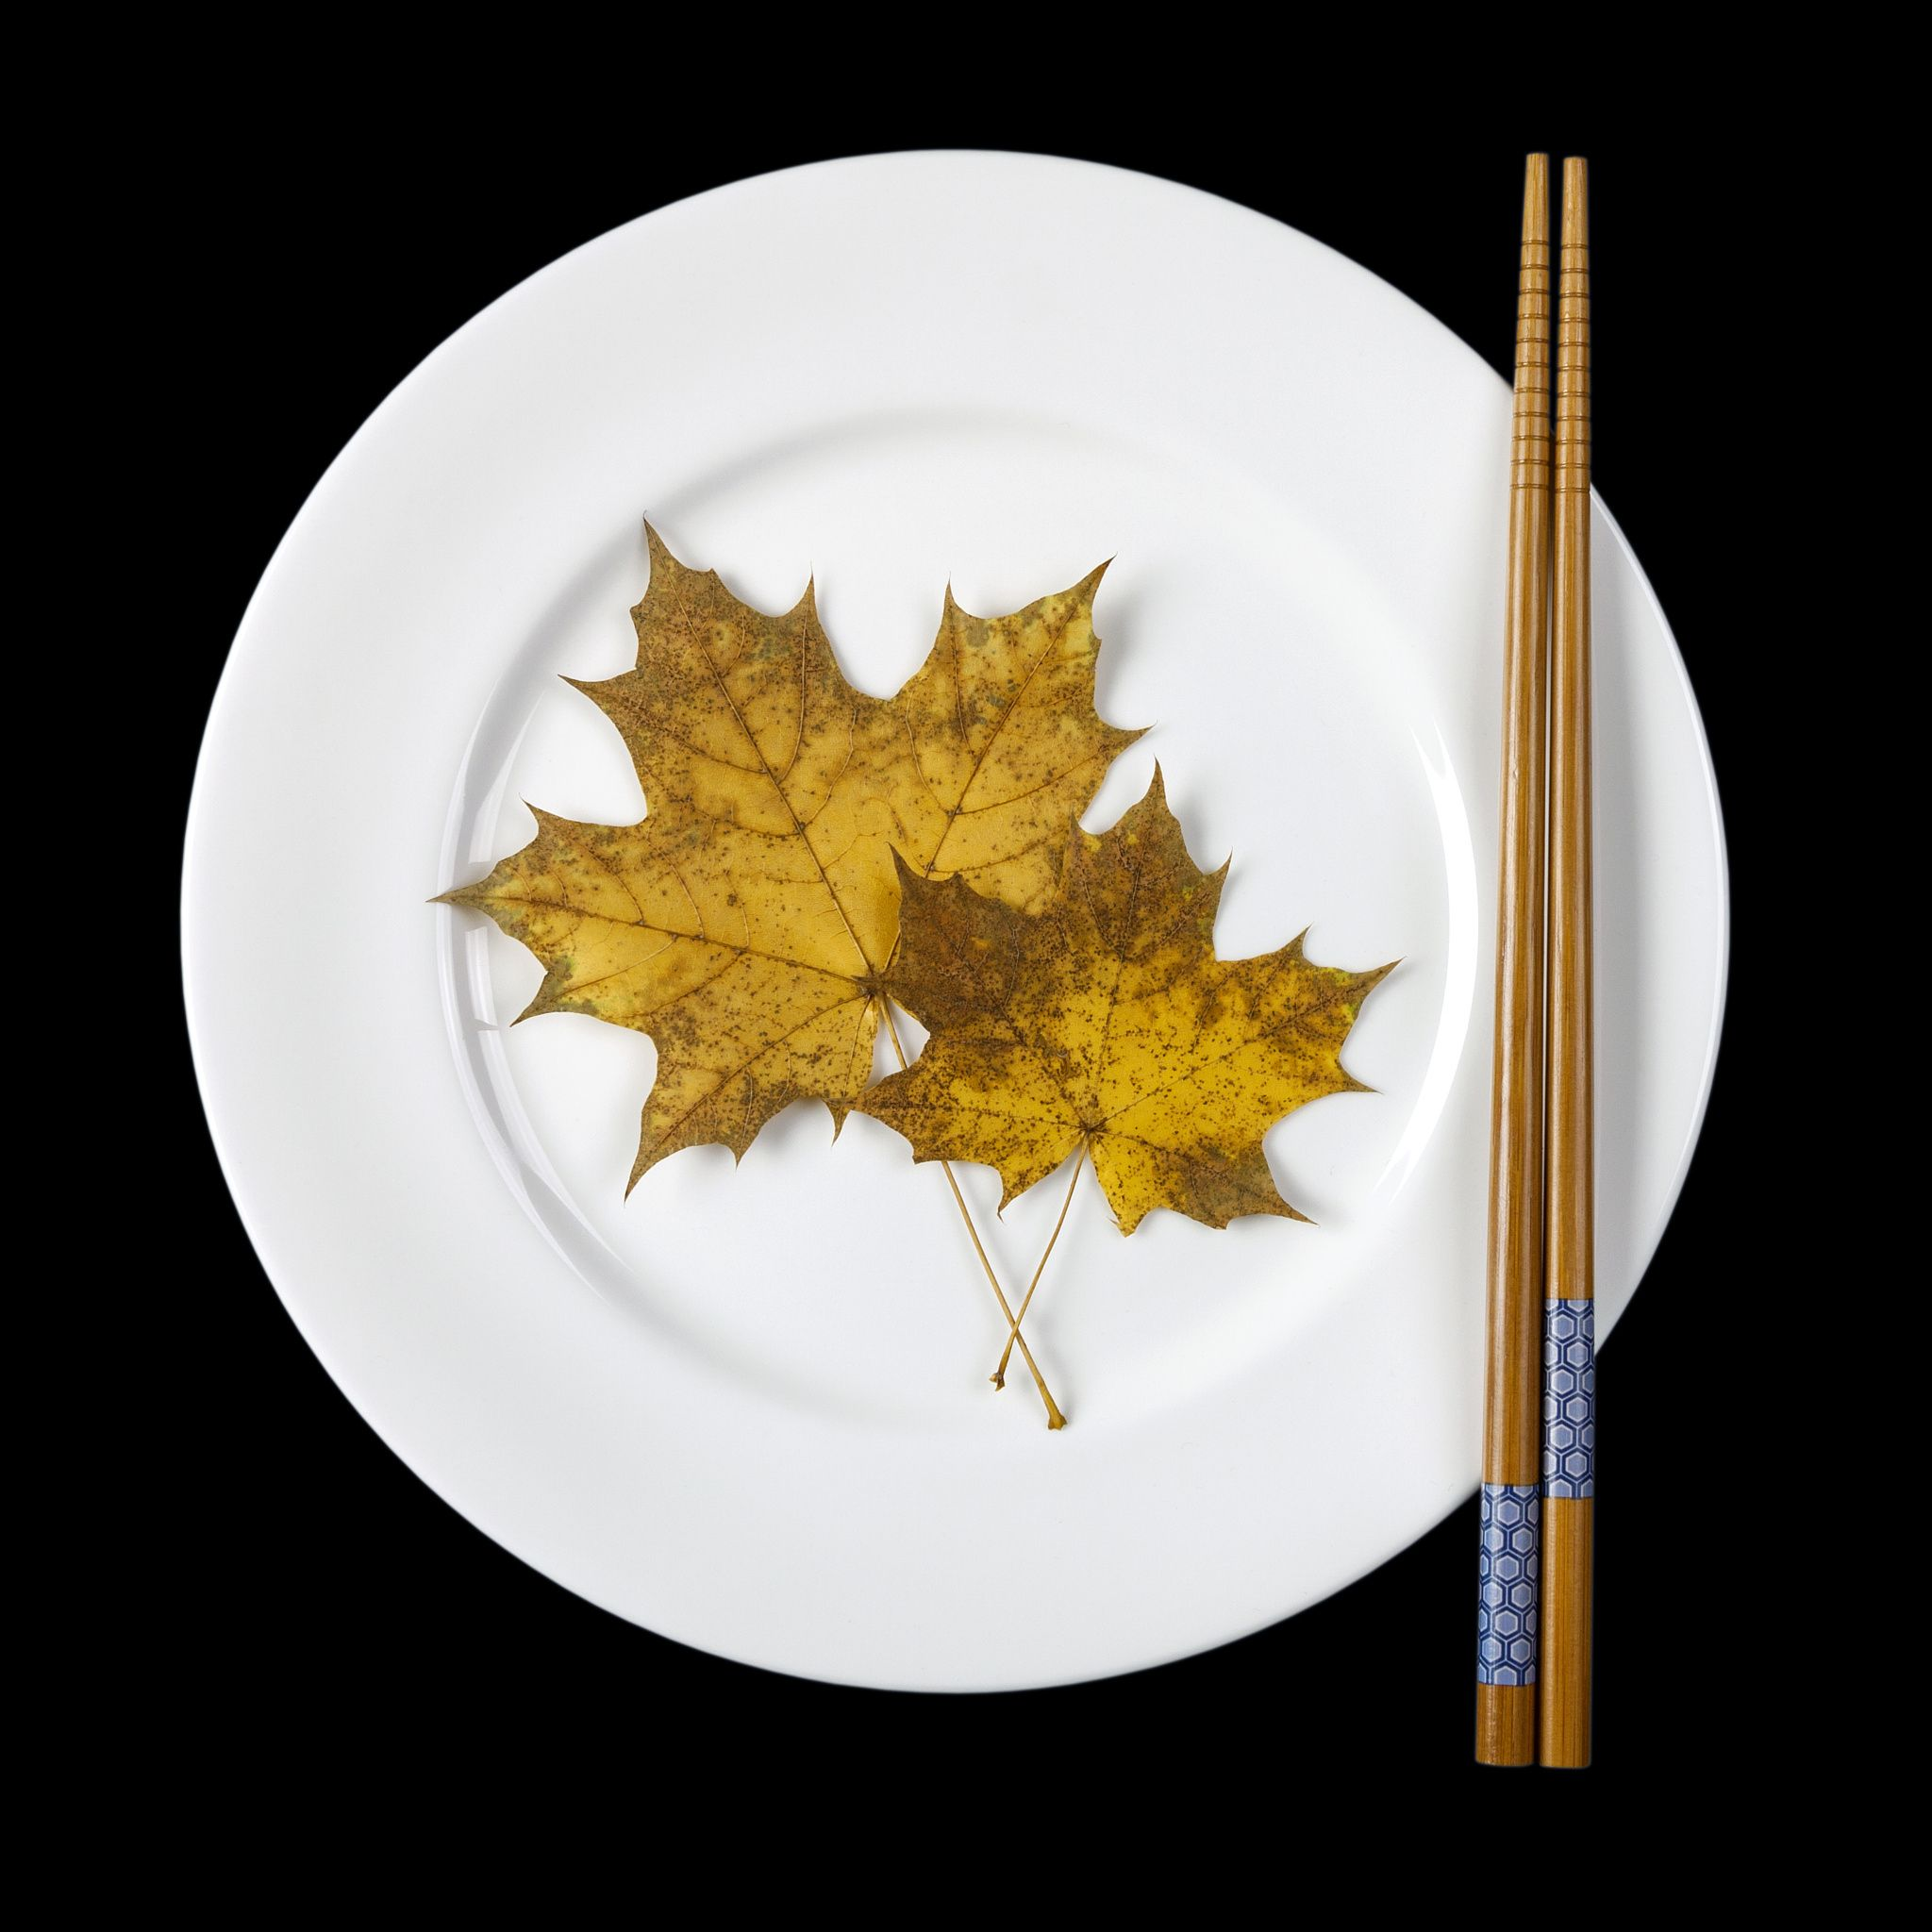 Plate with chopsticks and maple leaves - White plate with chopsticks and two maple leave isolated on black background